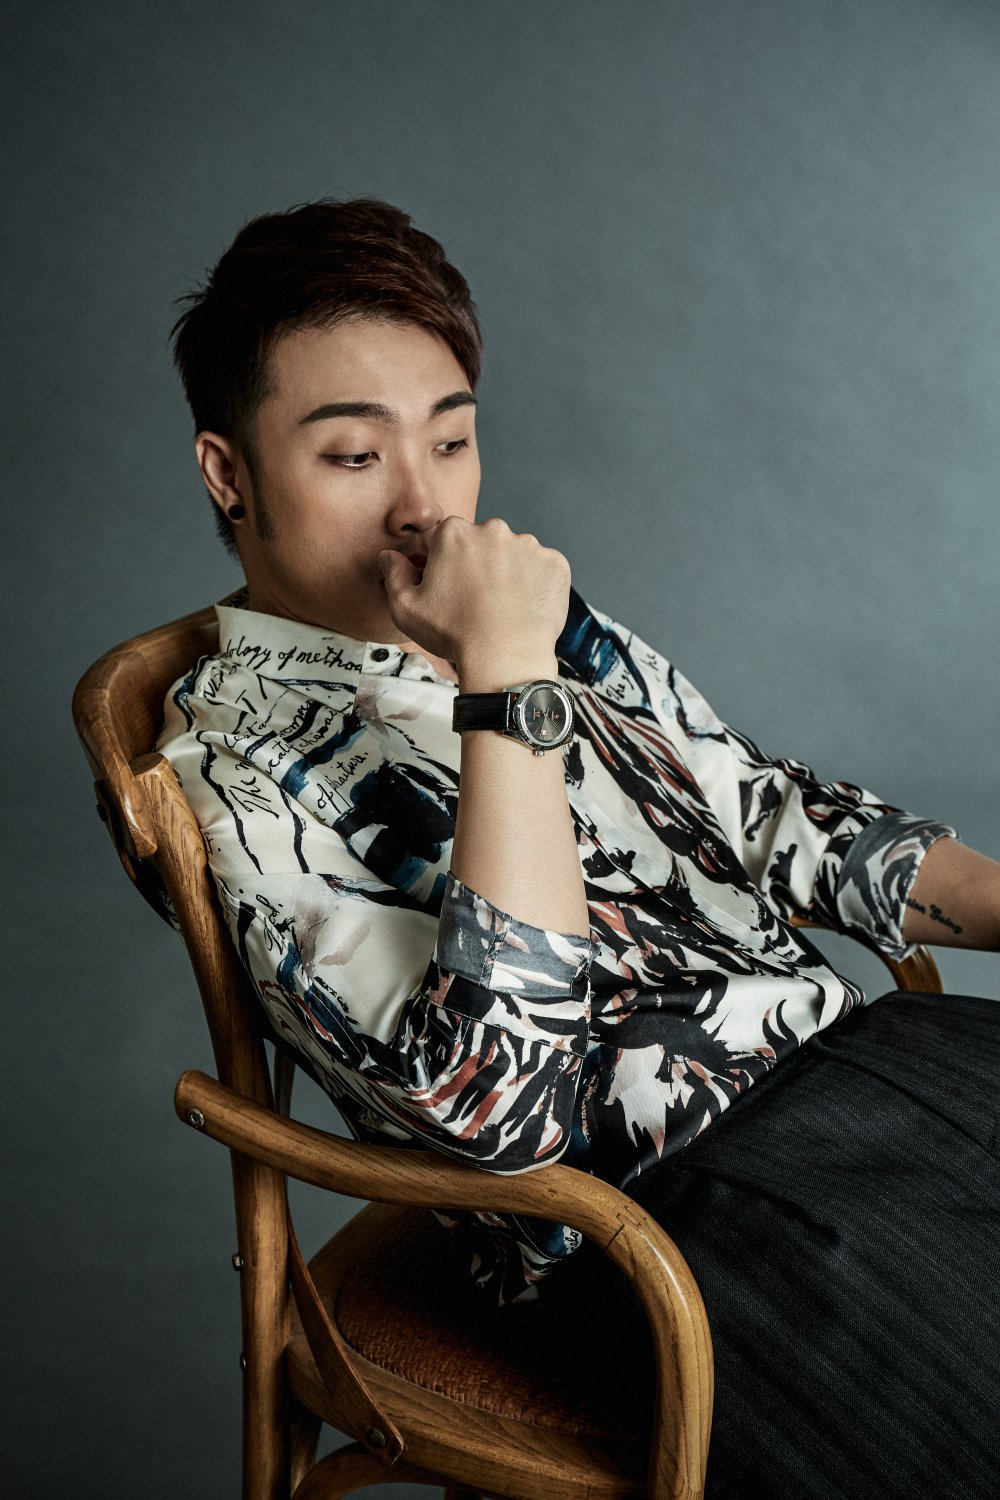 kingssleeve interview Shaun Liew founder yellow brick road dior homme - Shaun Liew: Success from Dedication and Passion